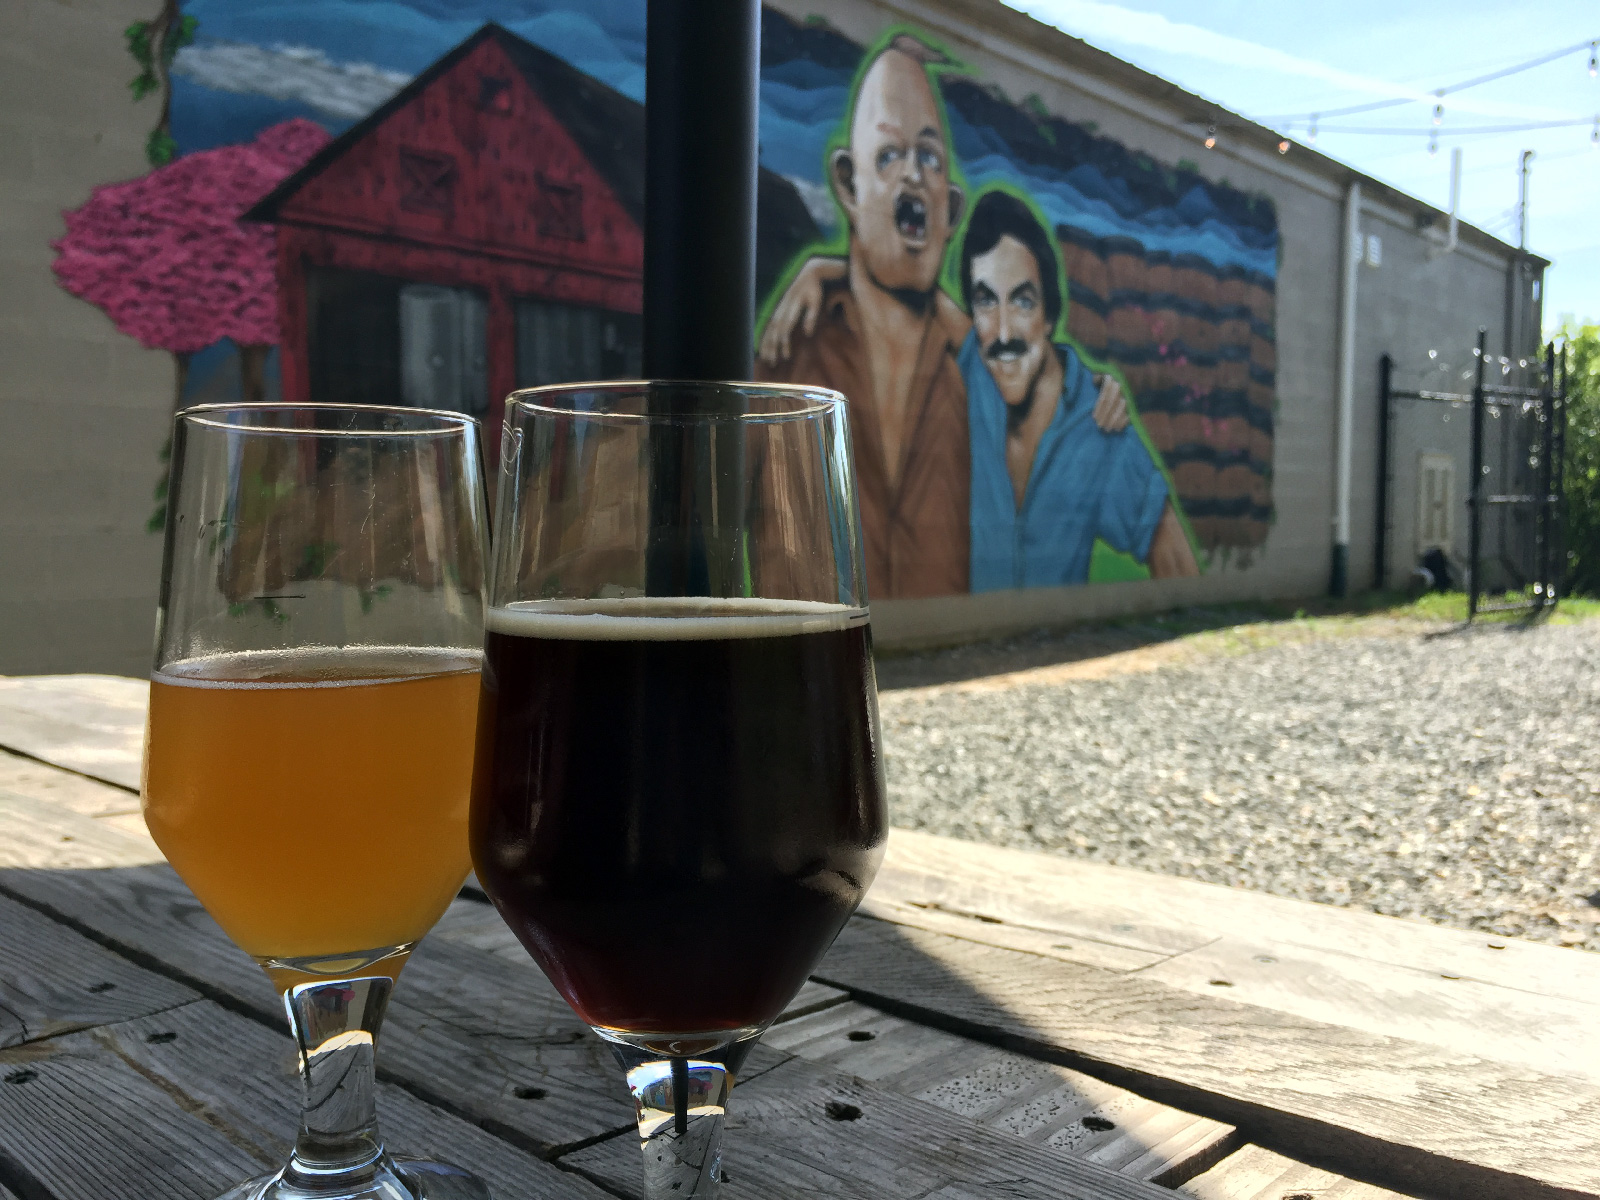 Burial Beer Co. in Asheville, NC by Jets Like Taxis